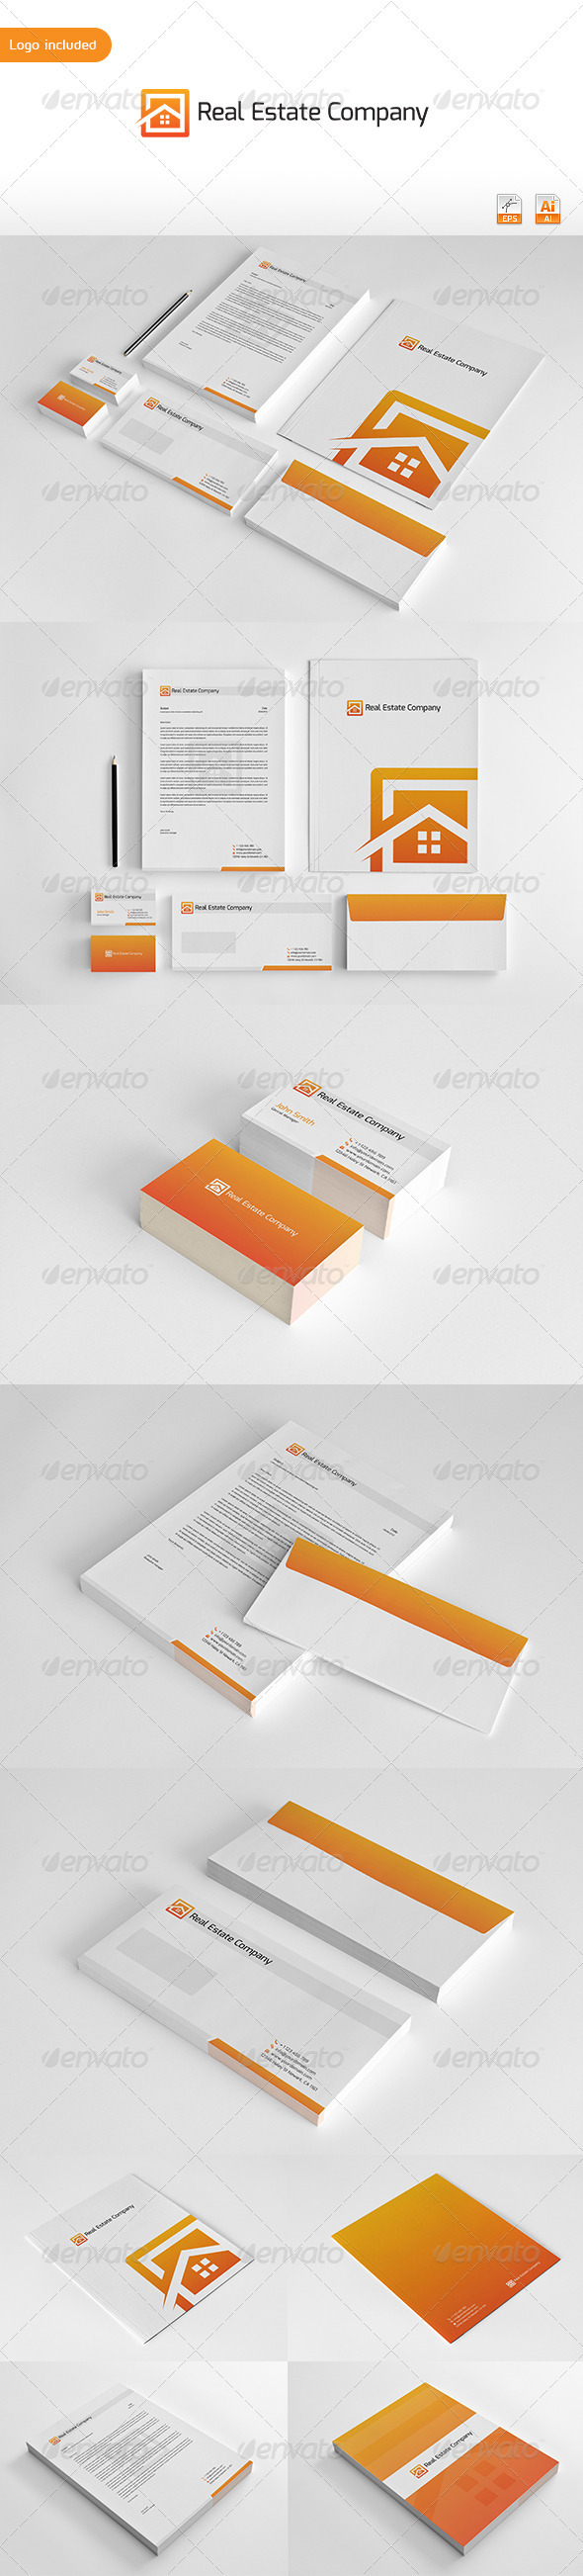 GraphicRiver Real Estate Corporate Identity 3315541